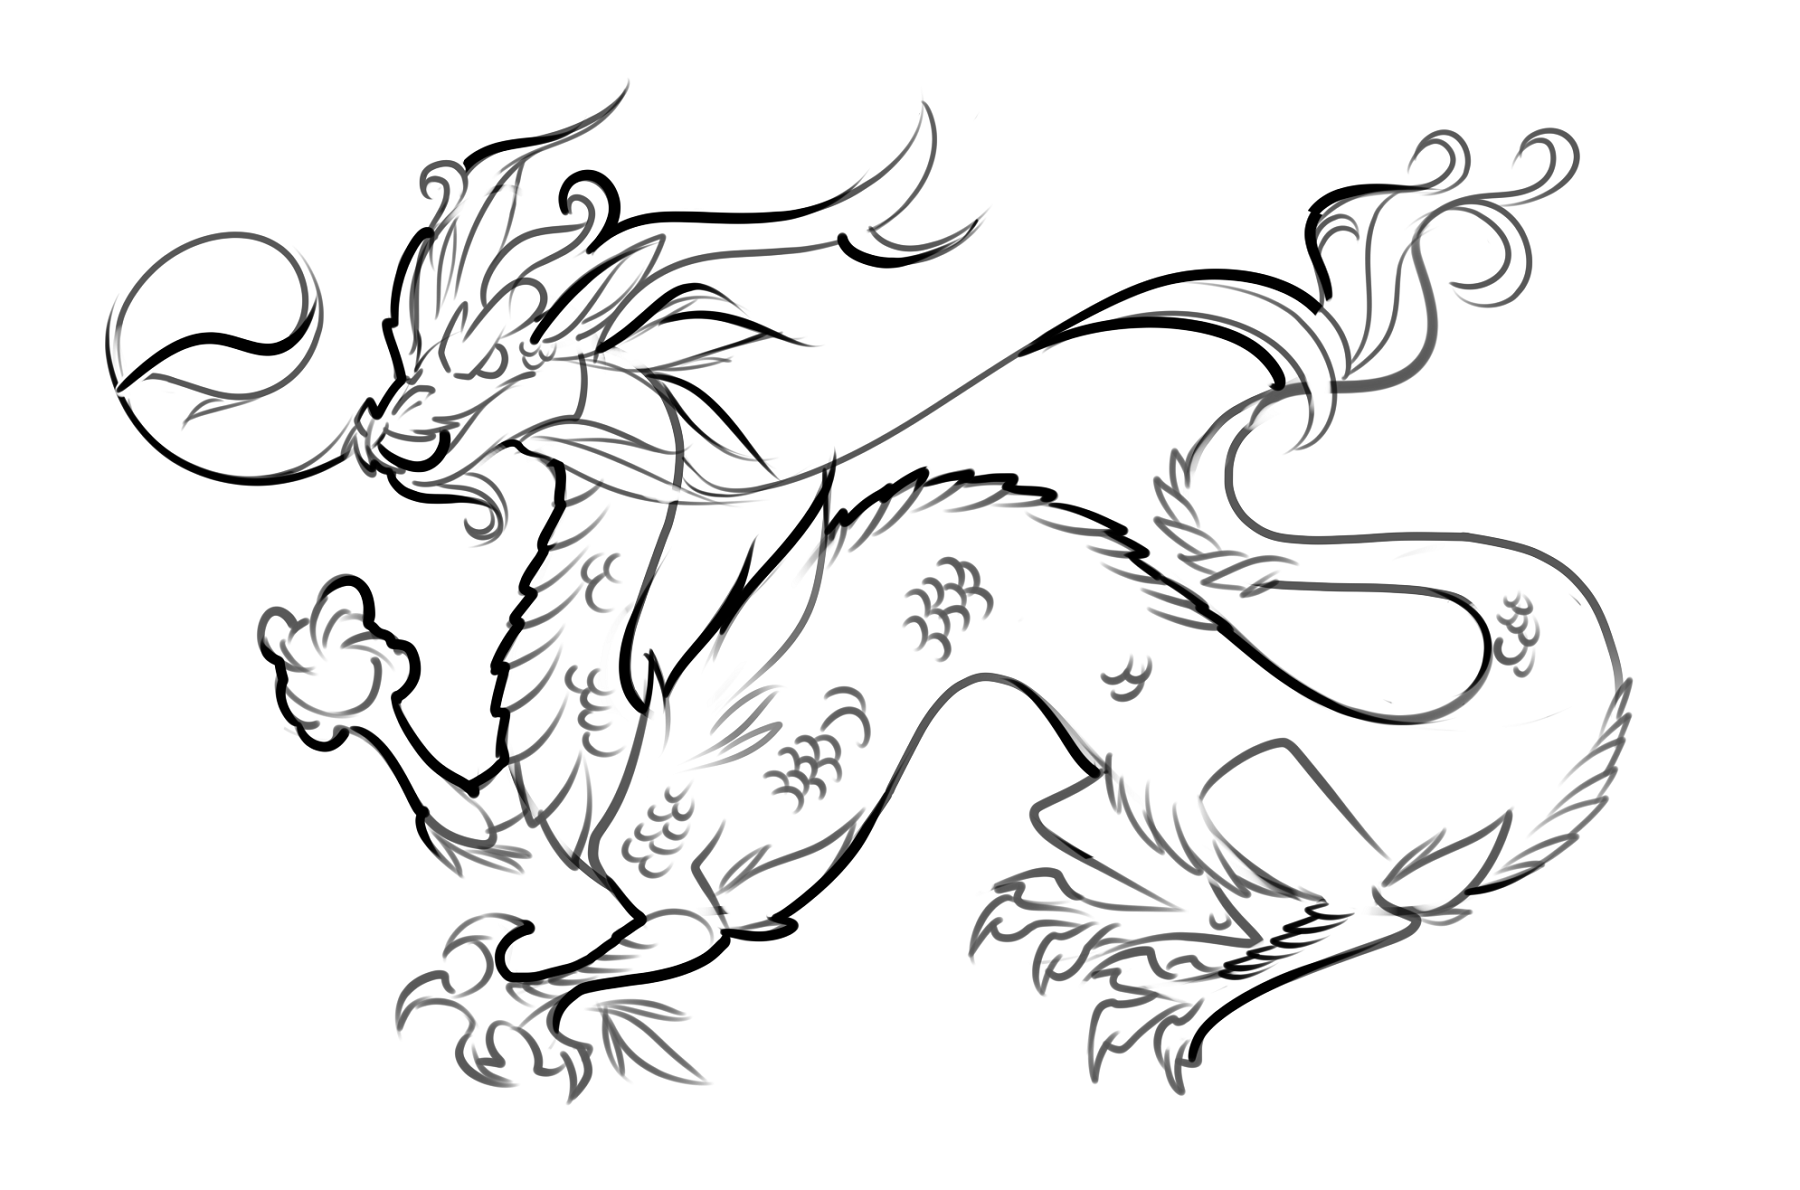 dragon pictures to color and print dragon coloring pages printable activity shelter color print and pictures dragon to